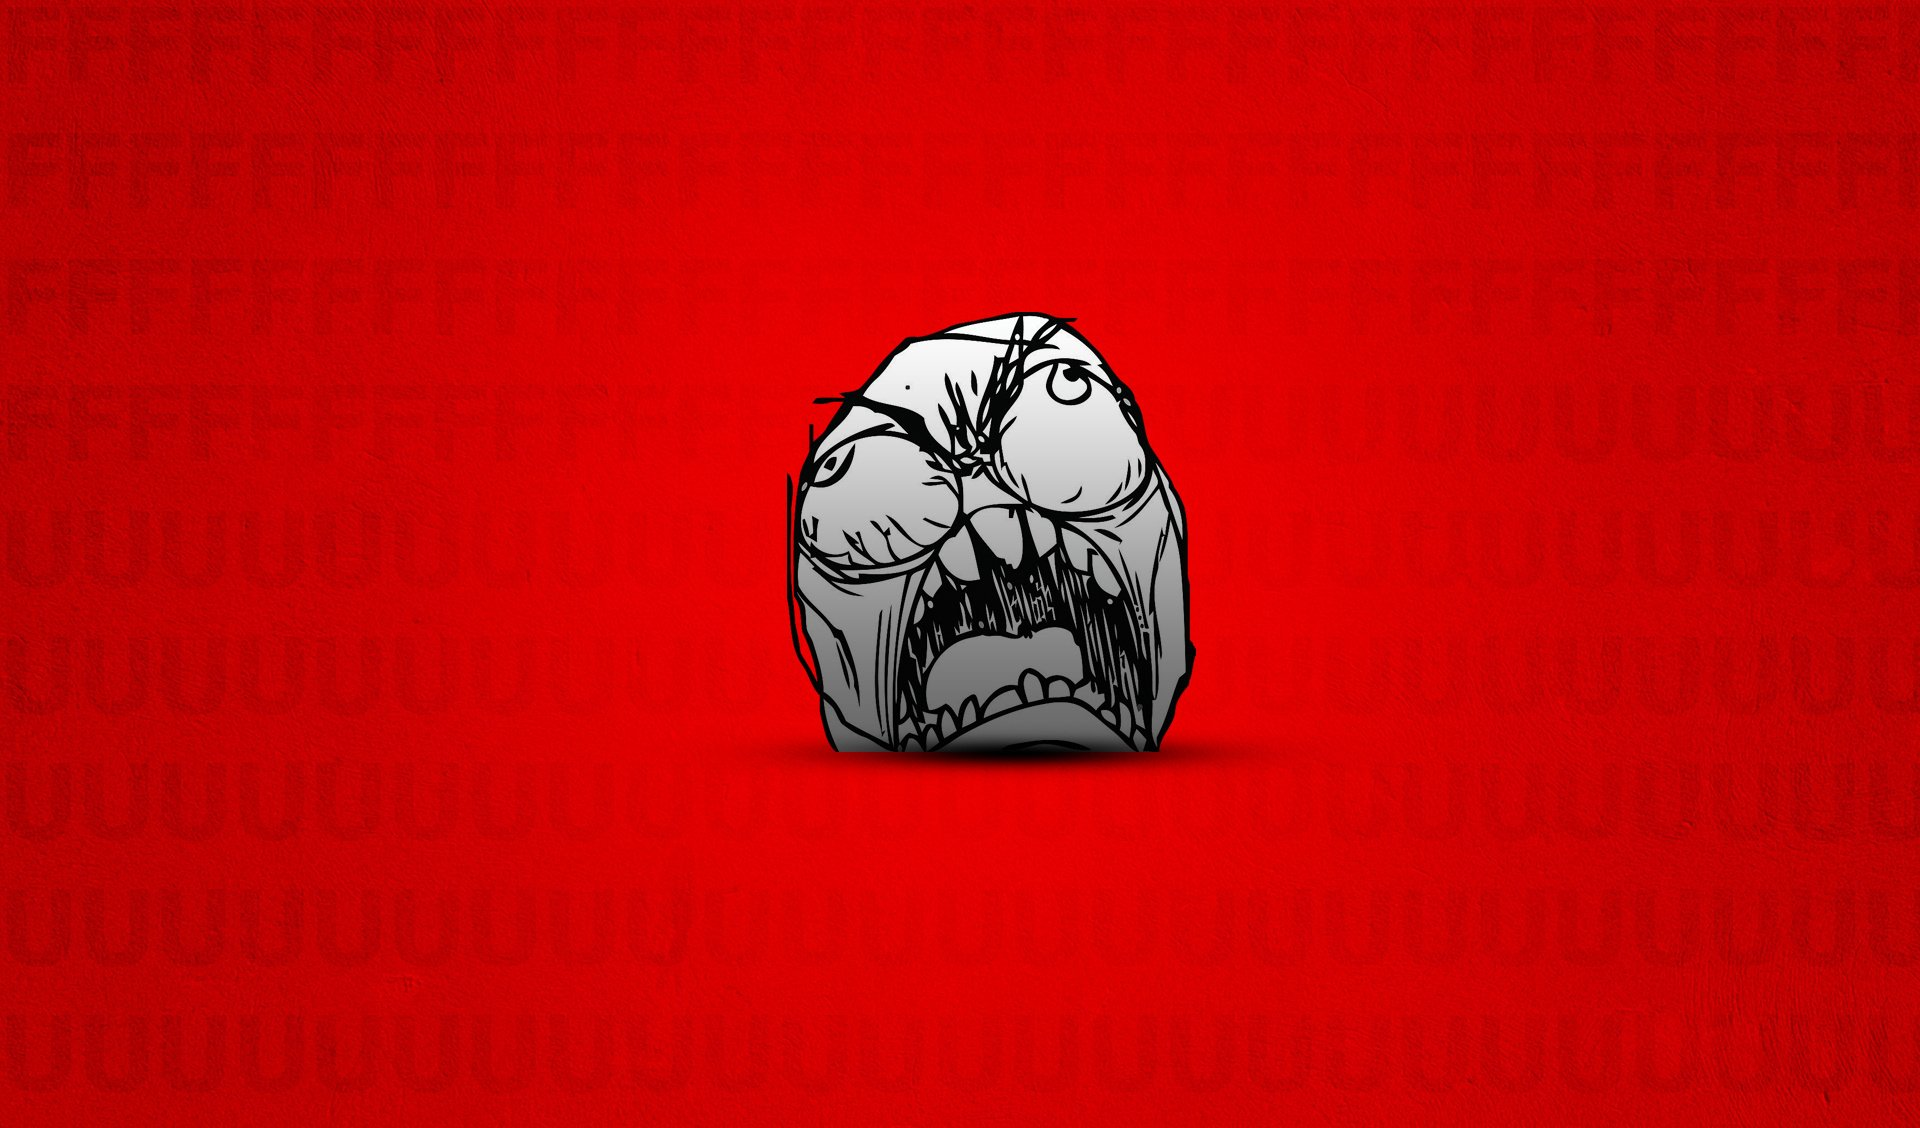 4 Troll Face HD Wallpapers | Backgrounds - Wallpaper Abyss